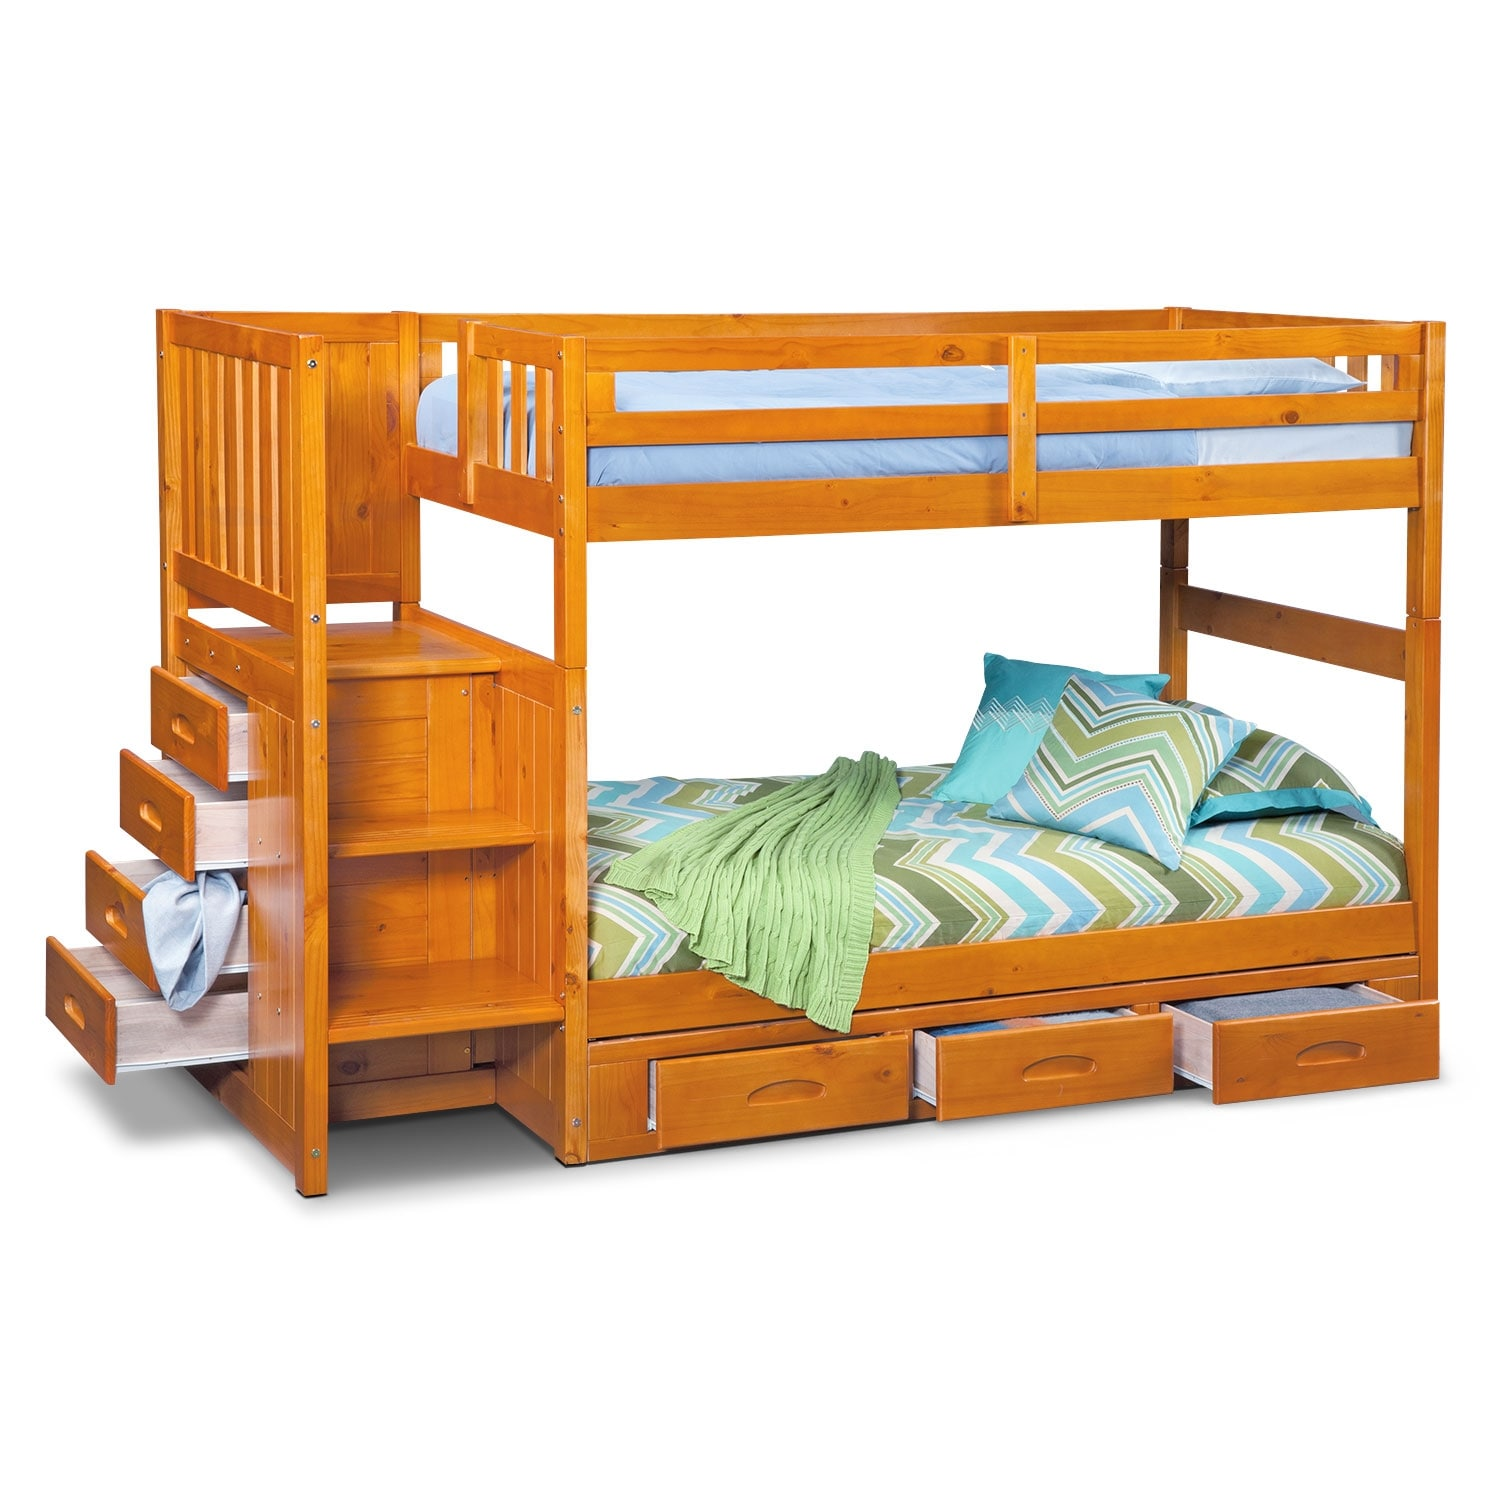 Ranger twin over twin bunk bed with storage stairs underbed drawers american signature furniture - Kids twin beds with storage drawers ...